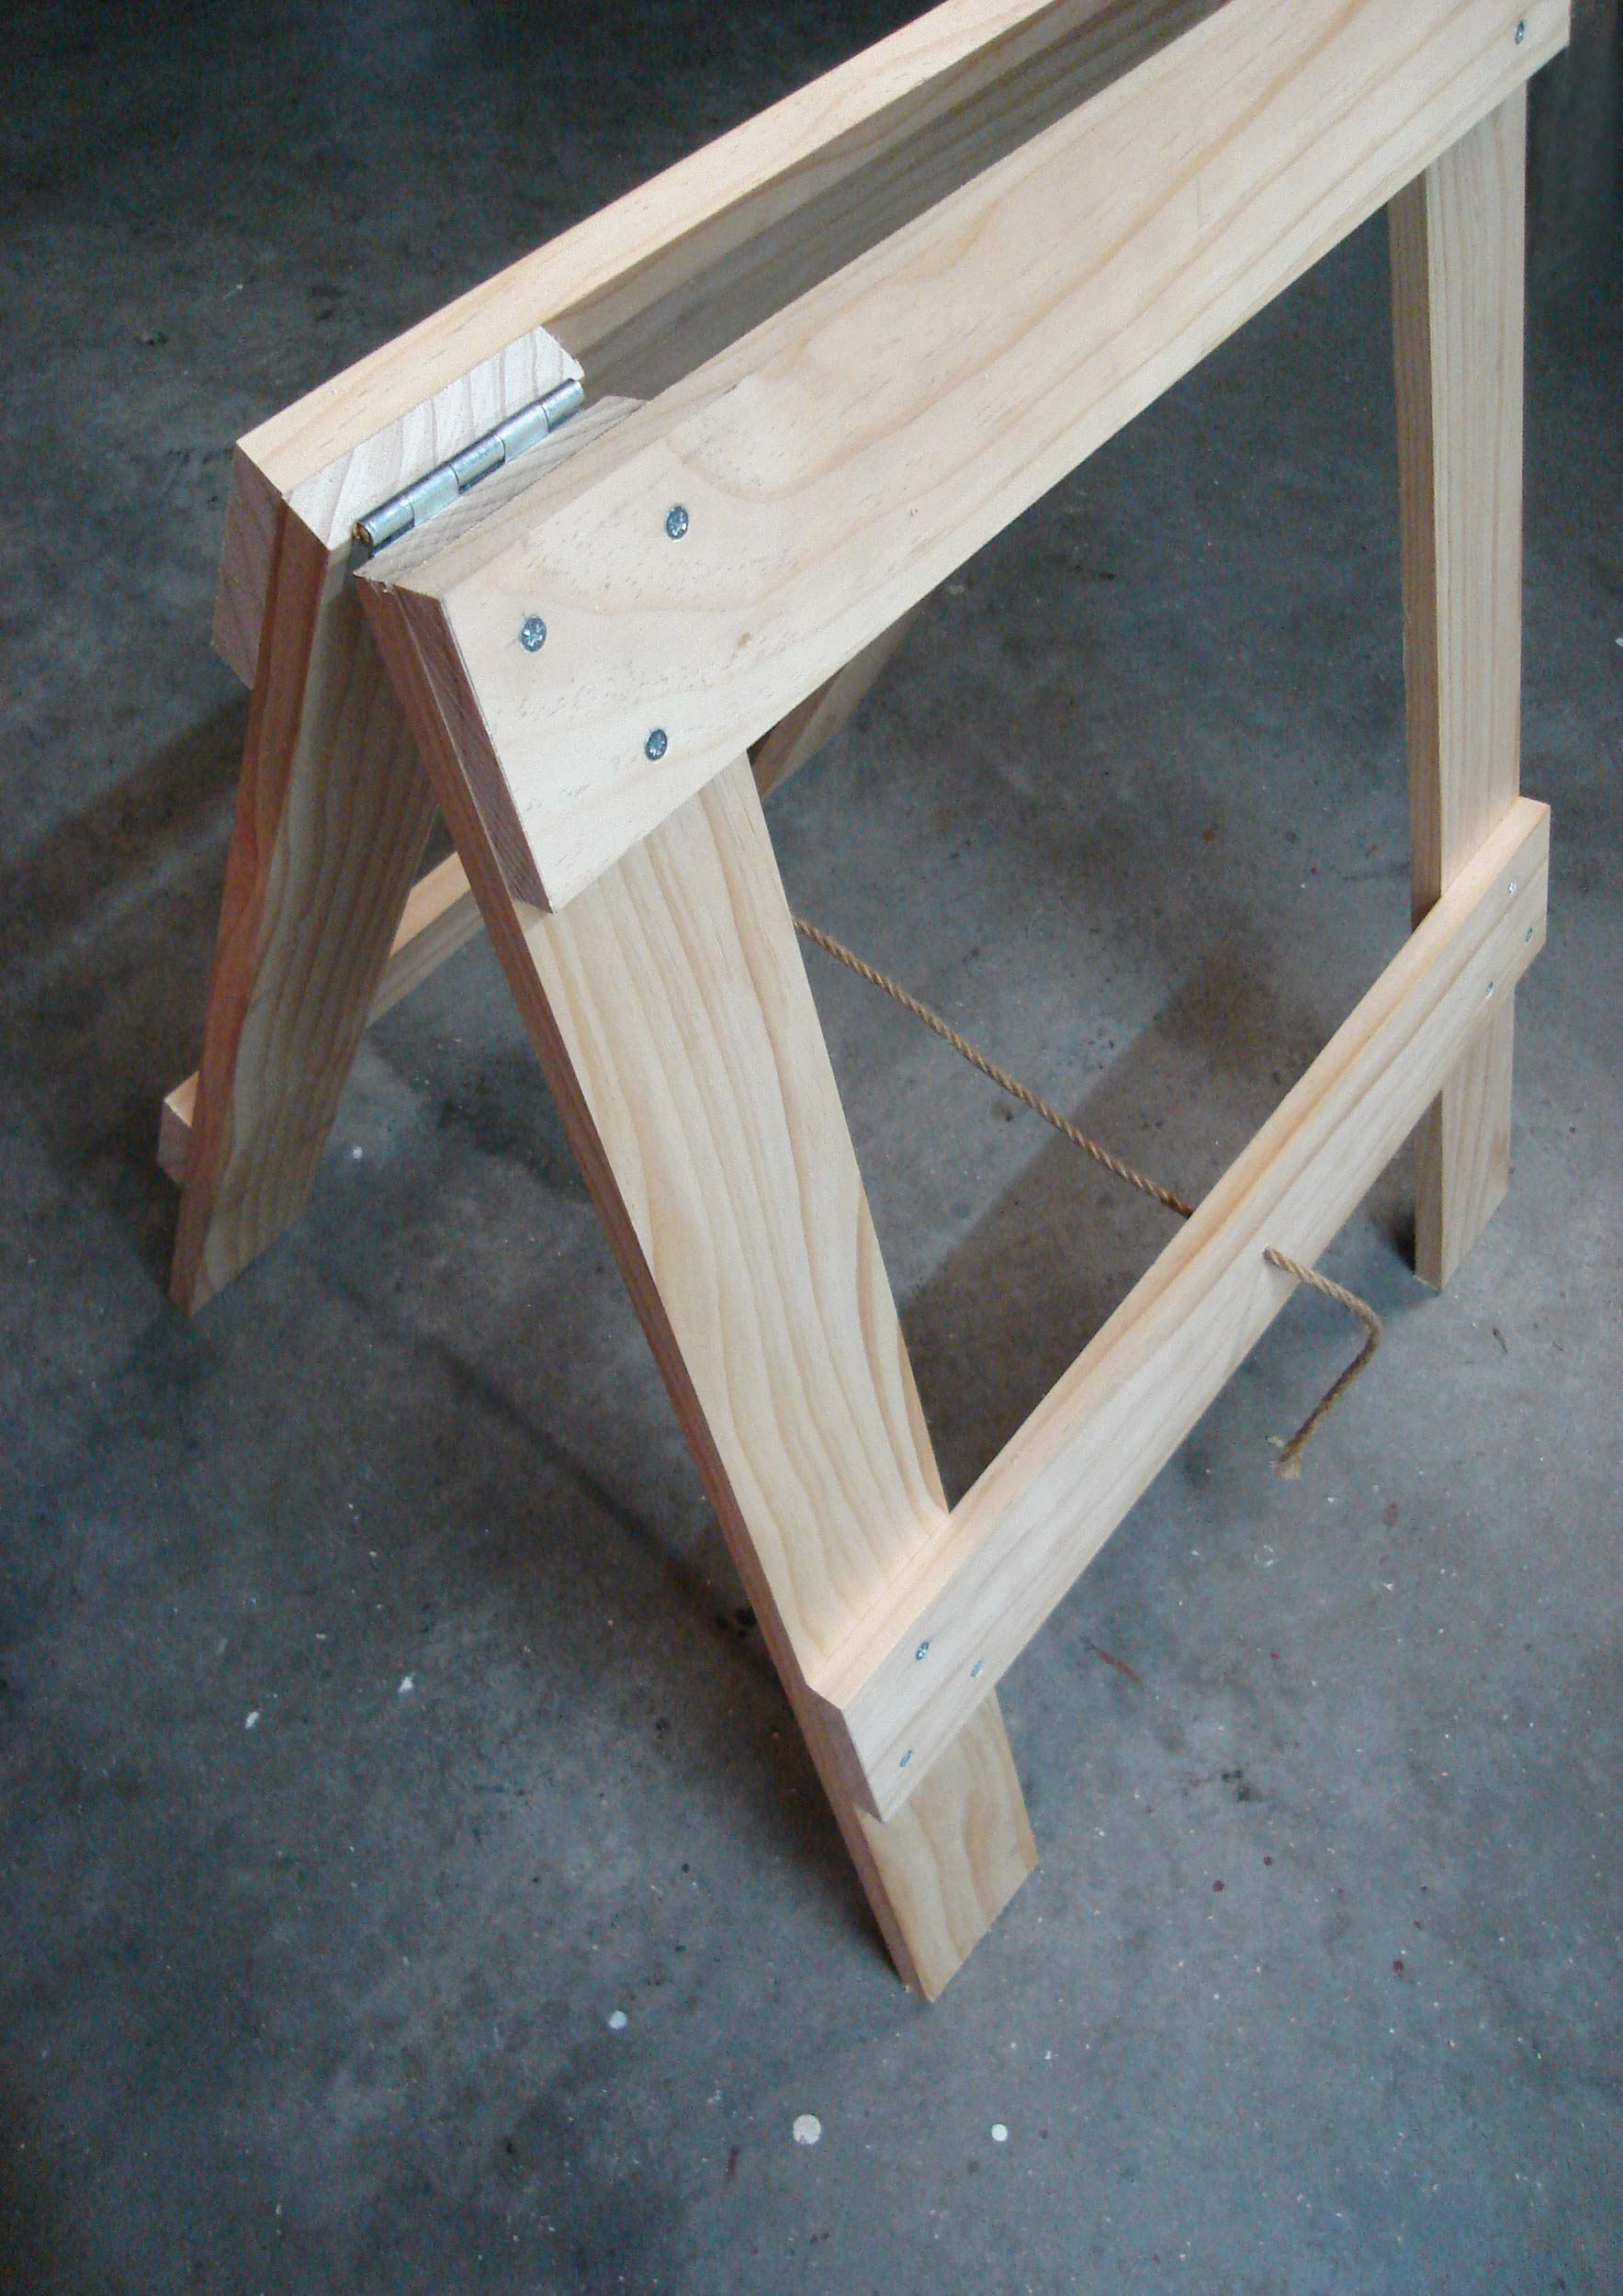 Best ideas about DIY Wood Table Legs . Save or Pin Pin by Holly G on craft entrepreneur ideas Now.